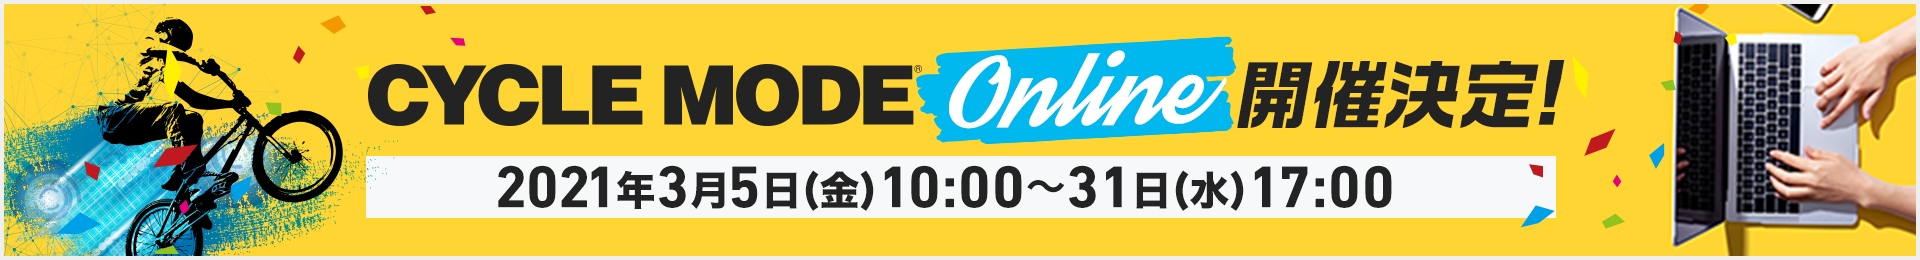 CYCLE MODE ONLINE 開催決定